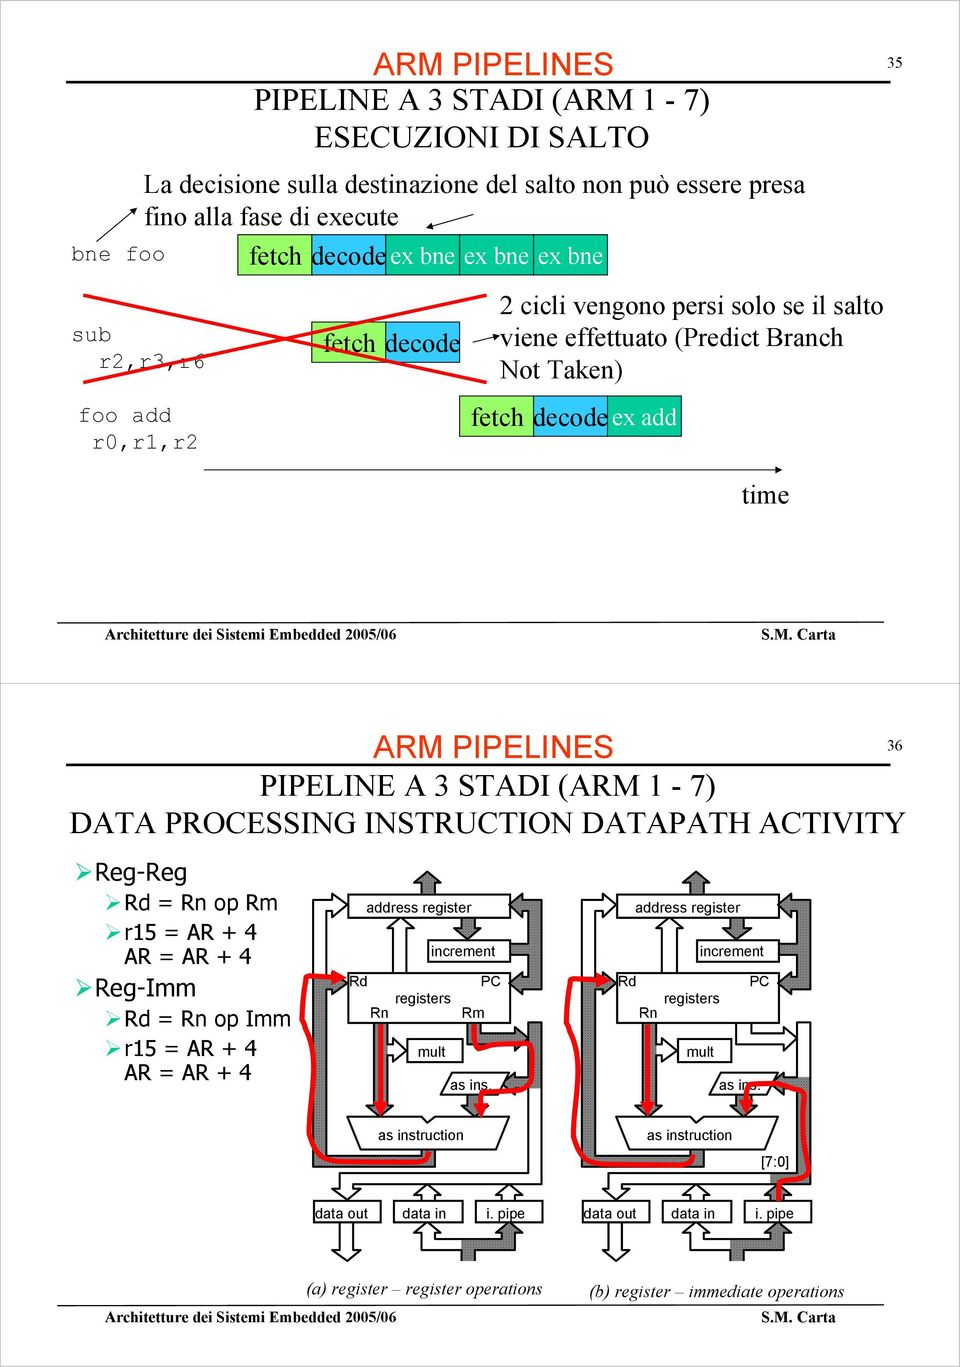 DATA PROCESSING INSTRUCTION DATAPATH ACTIVITY Reg-Reg Rd = Rn op Rm r15 = AR + 4 AR = AR + 4 Reg-Imm Rd = Rn op Imm r15 = AR + 4 AR = AR + 4 address register Rd registers Rn increment mult Rm PC as